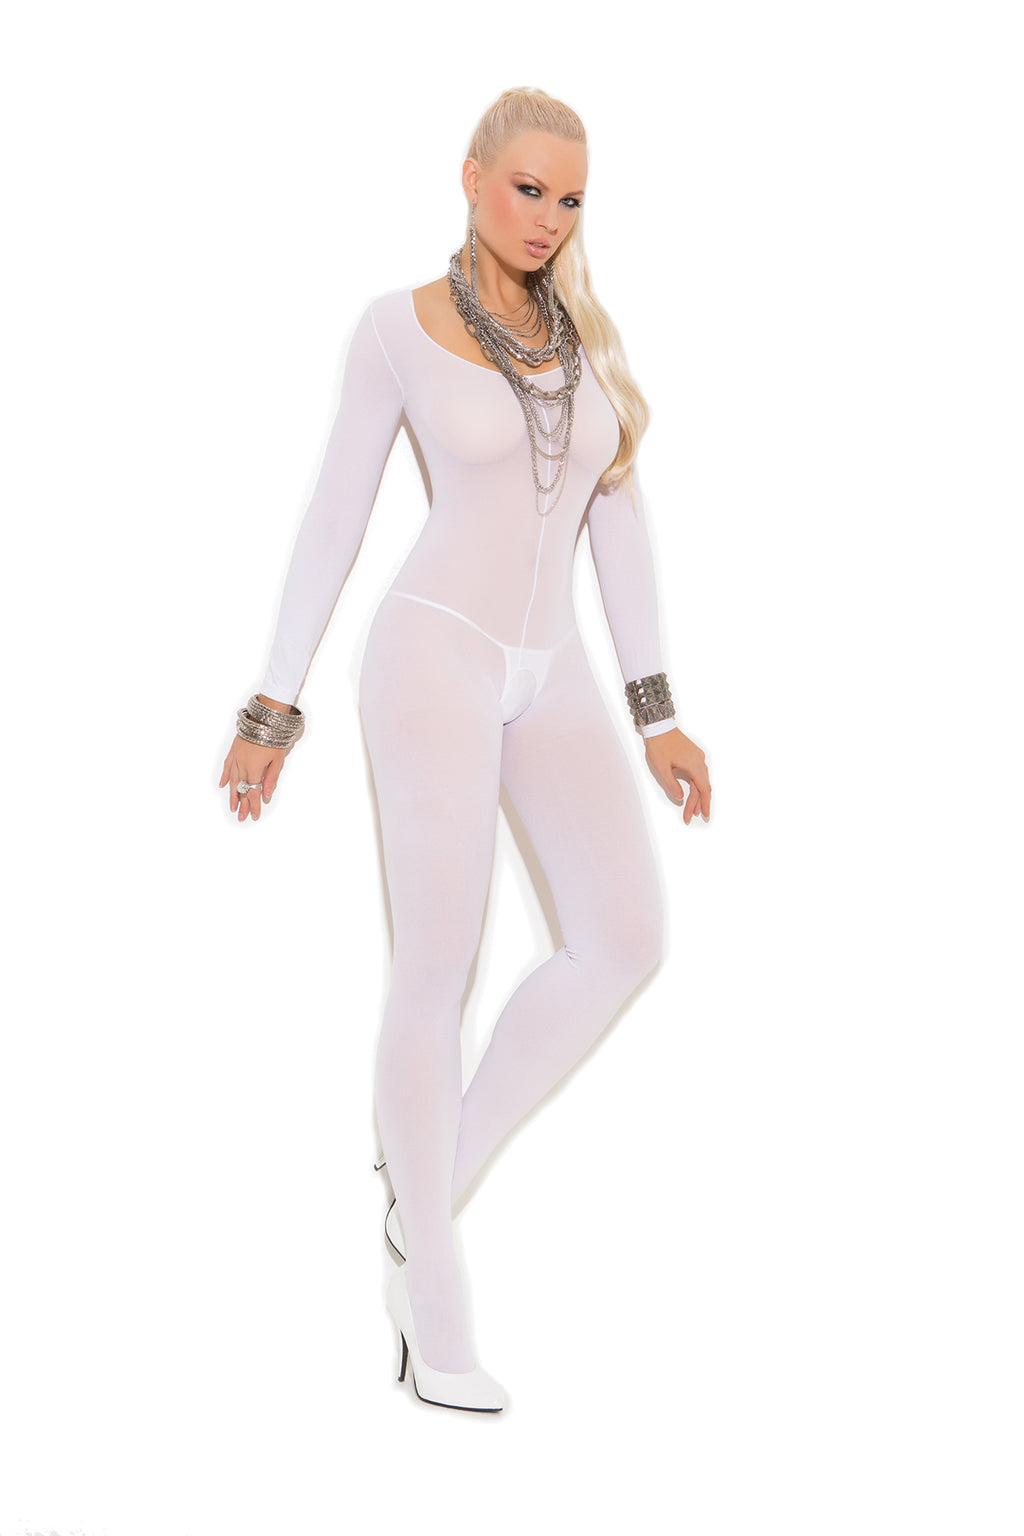 Elegant Moments 1606 White Bodystocking